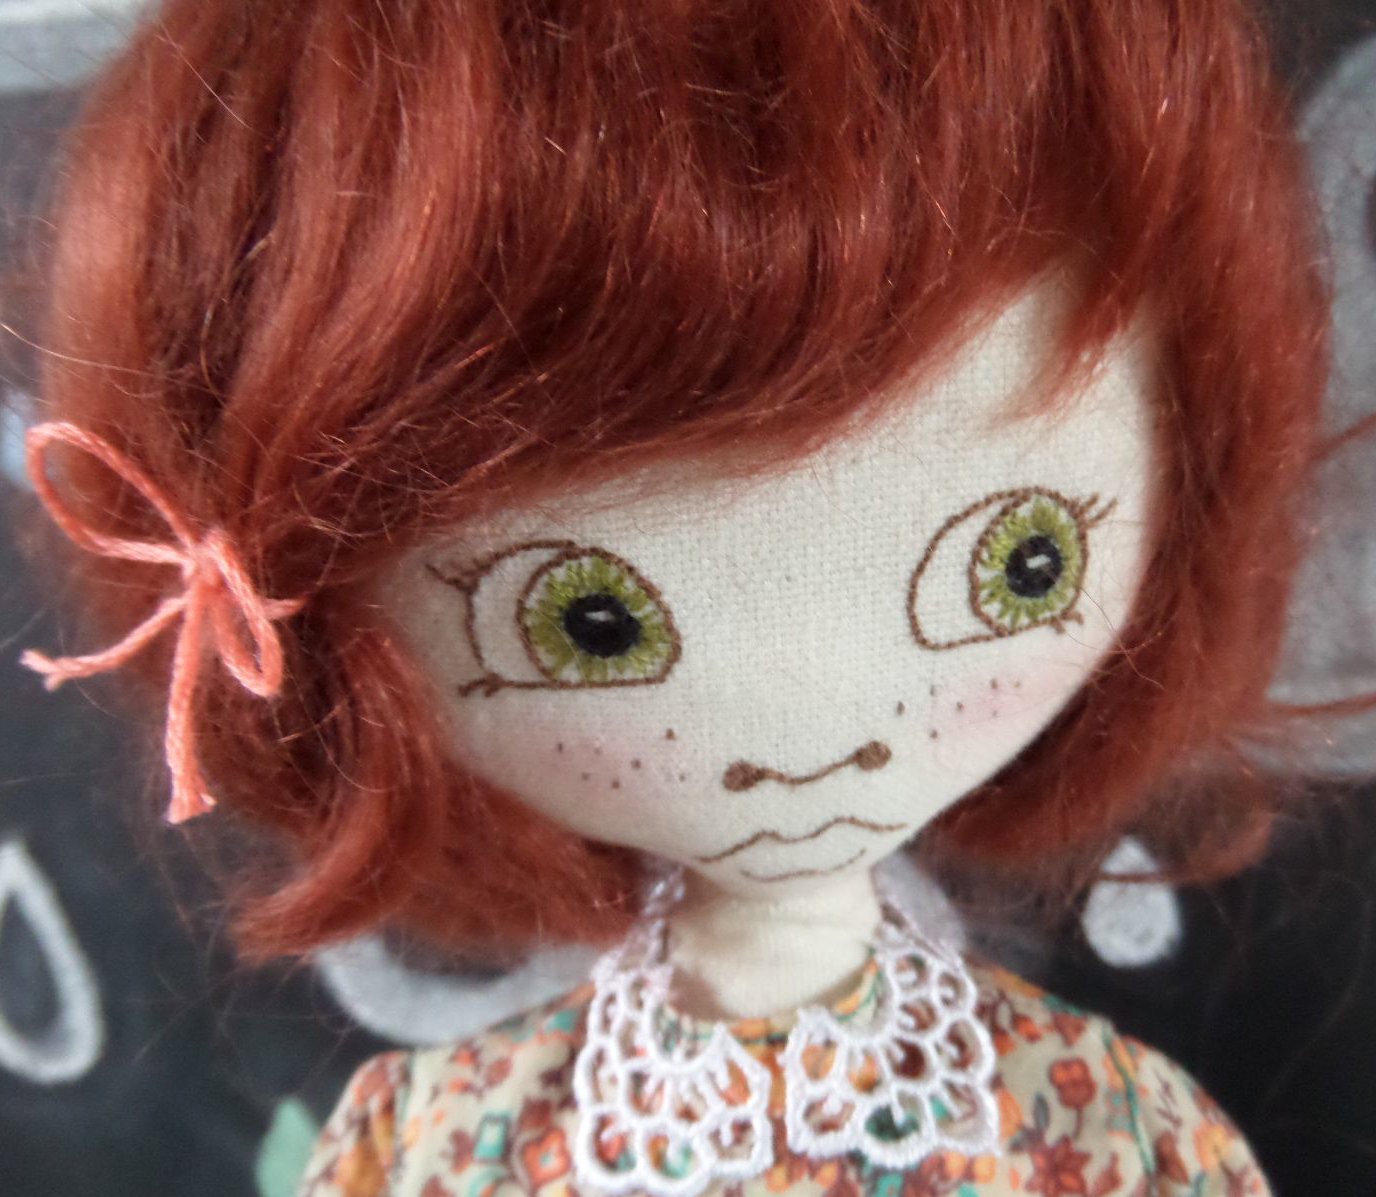 Beautiful hand embroidered eyes on this stunning doll by Supercutetilly